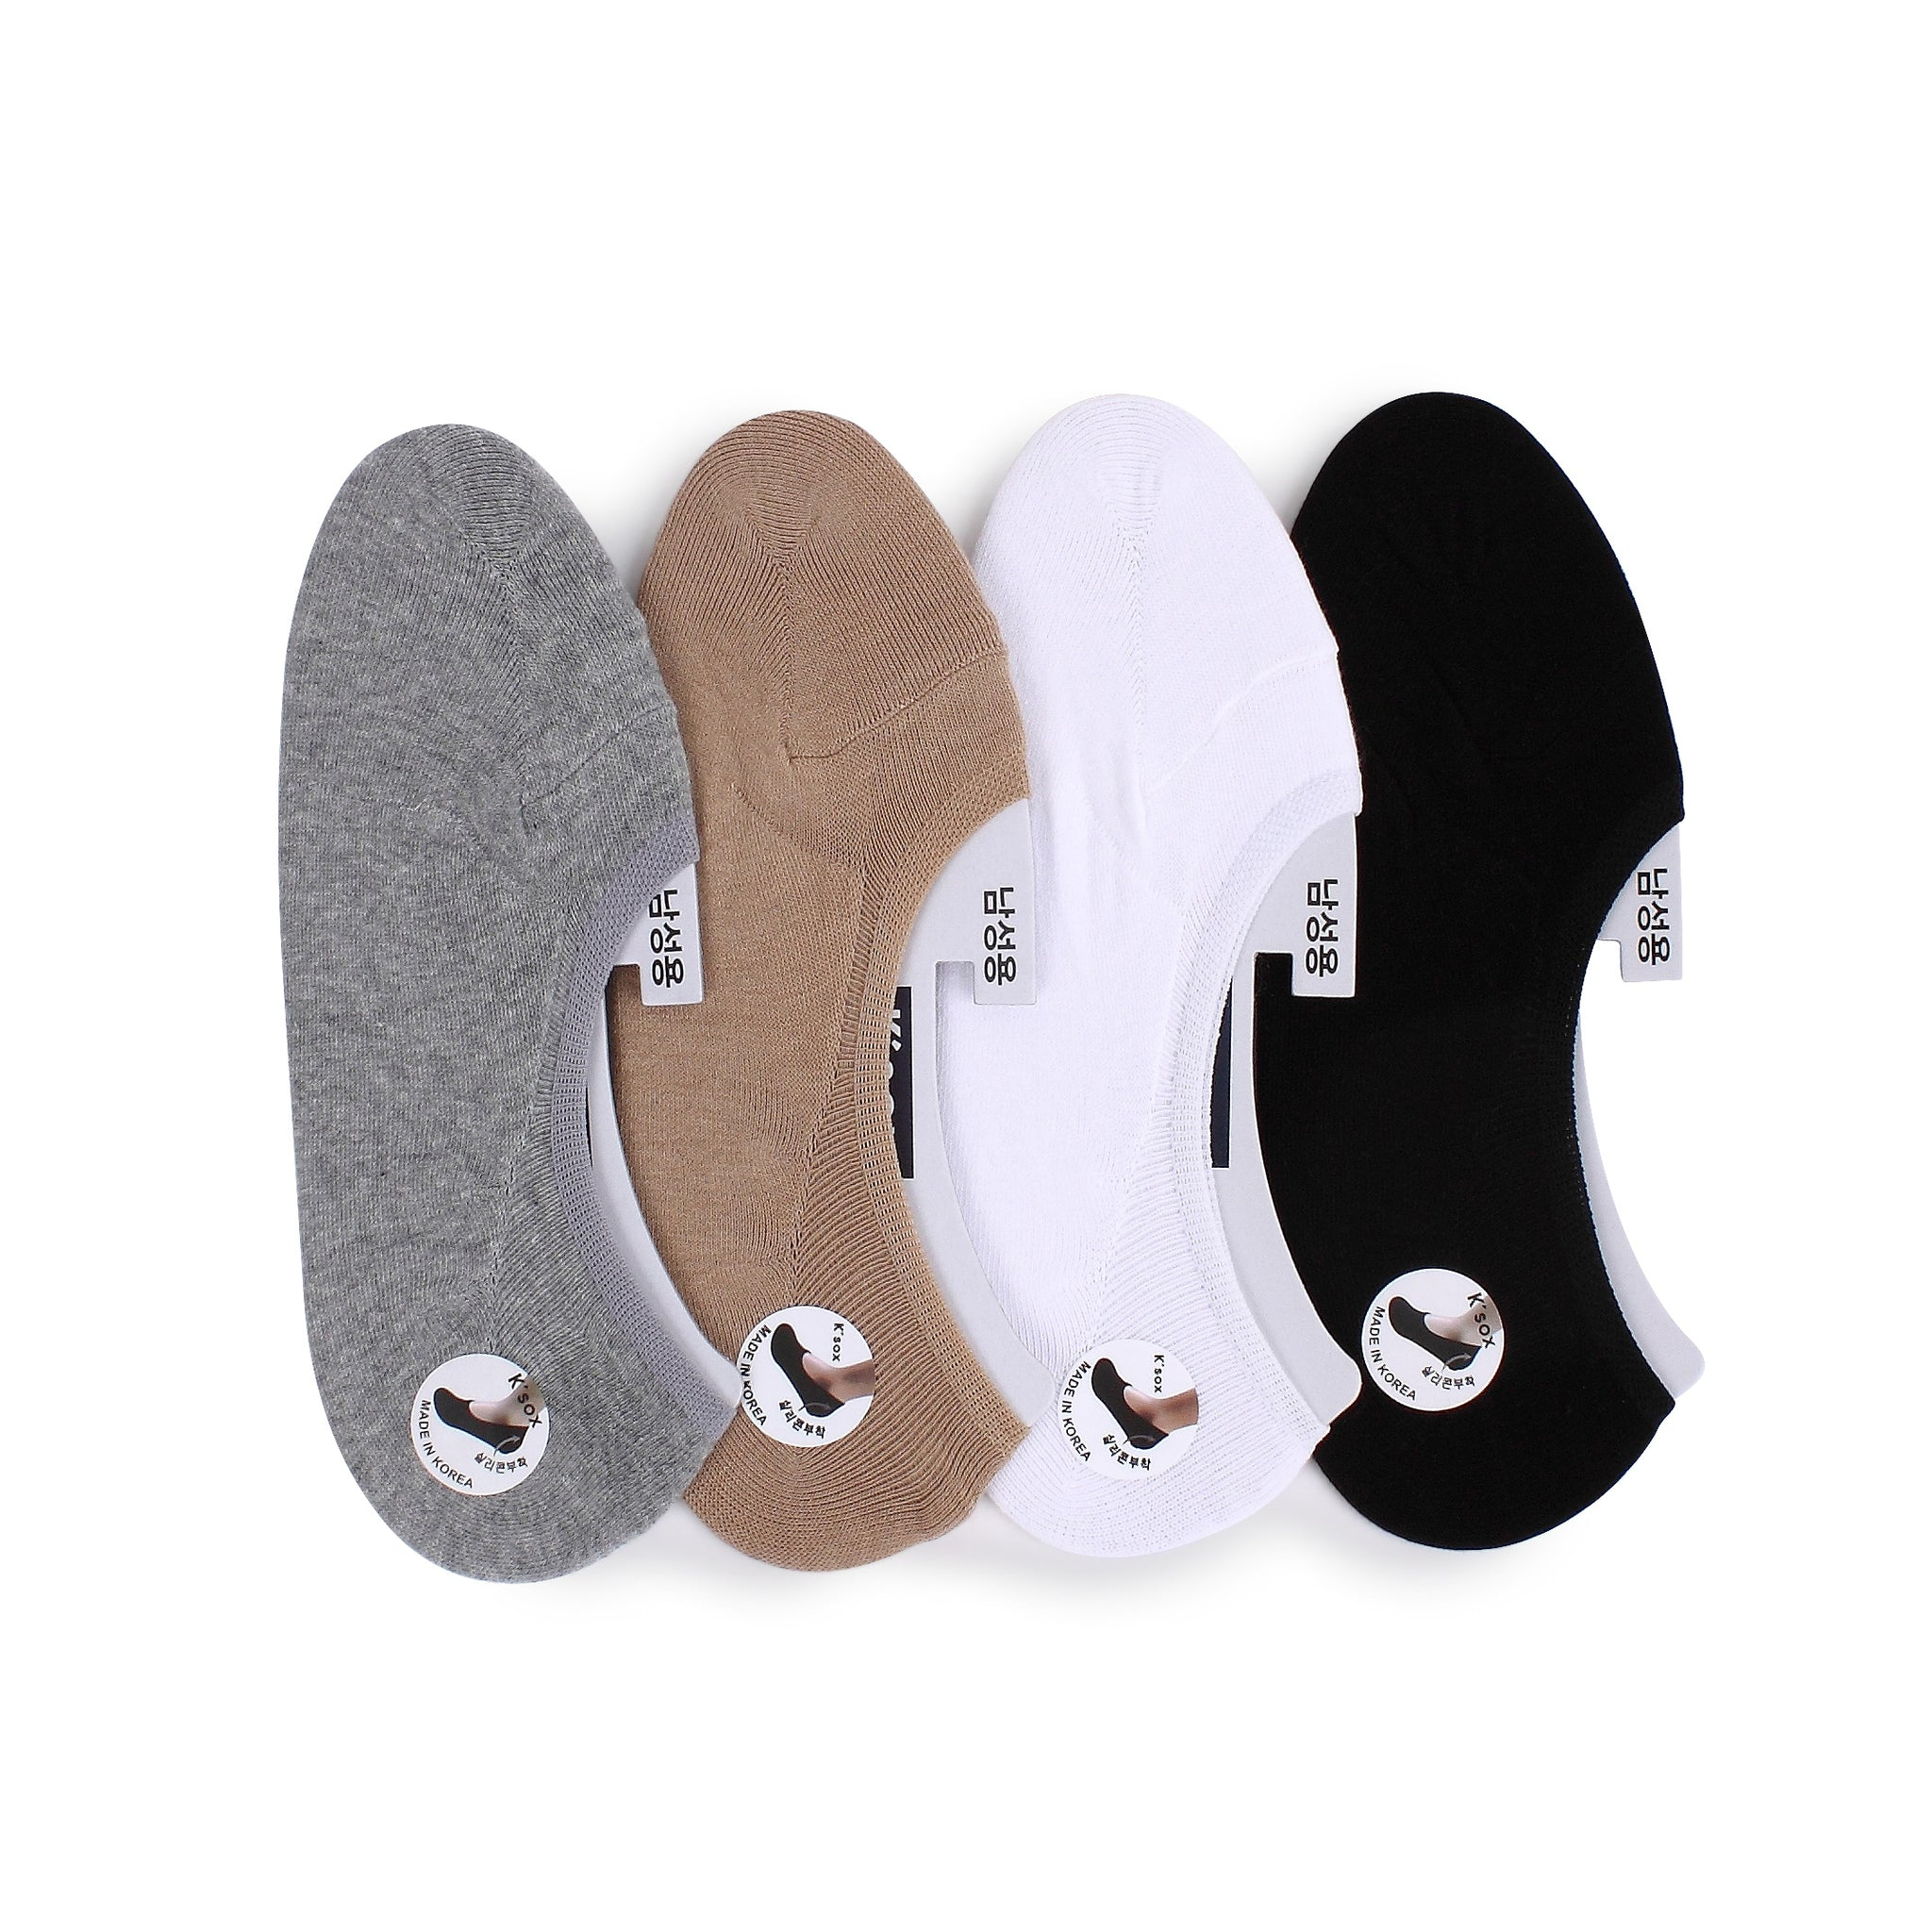 (4pairs) Basic Seamless Men no show Socks MC14 - intypesocks